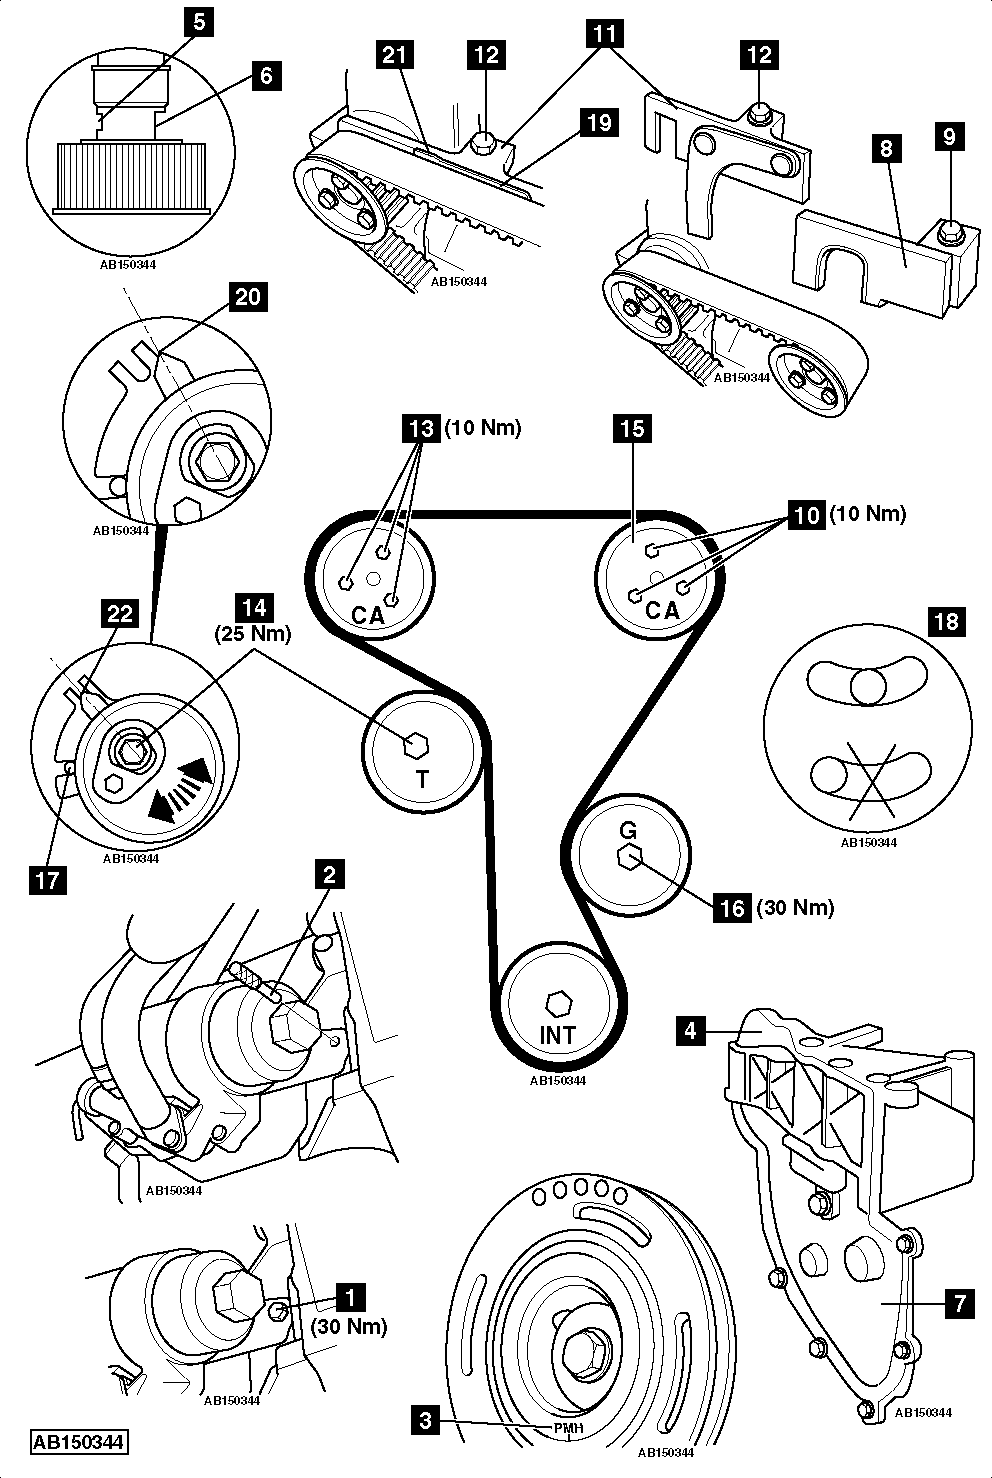 2010 Chrysler 300 Timing Chain Diagram as well 39cpc Voyager Replacing Timing Belt Marks Cylinder Tdc besides Us90410 furthermore Curbside Classic 1956 Chrysler Windsor And The Poly Engine The Semi Hemi moreover 2 4l Twin Cam Engine. on mercedes timing chain marks